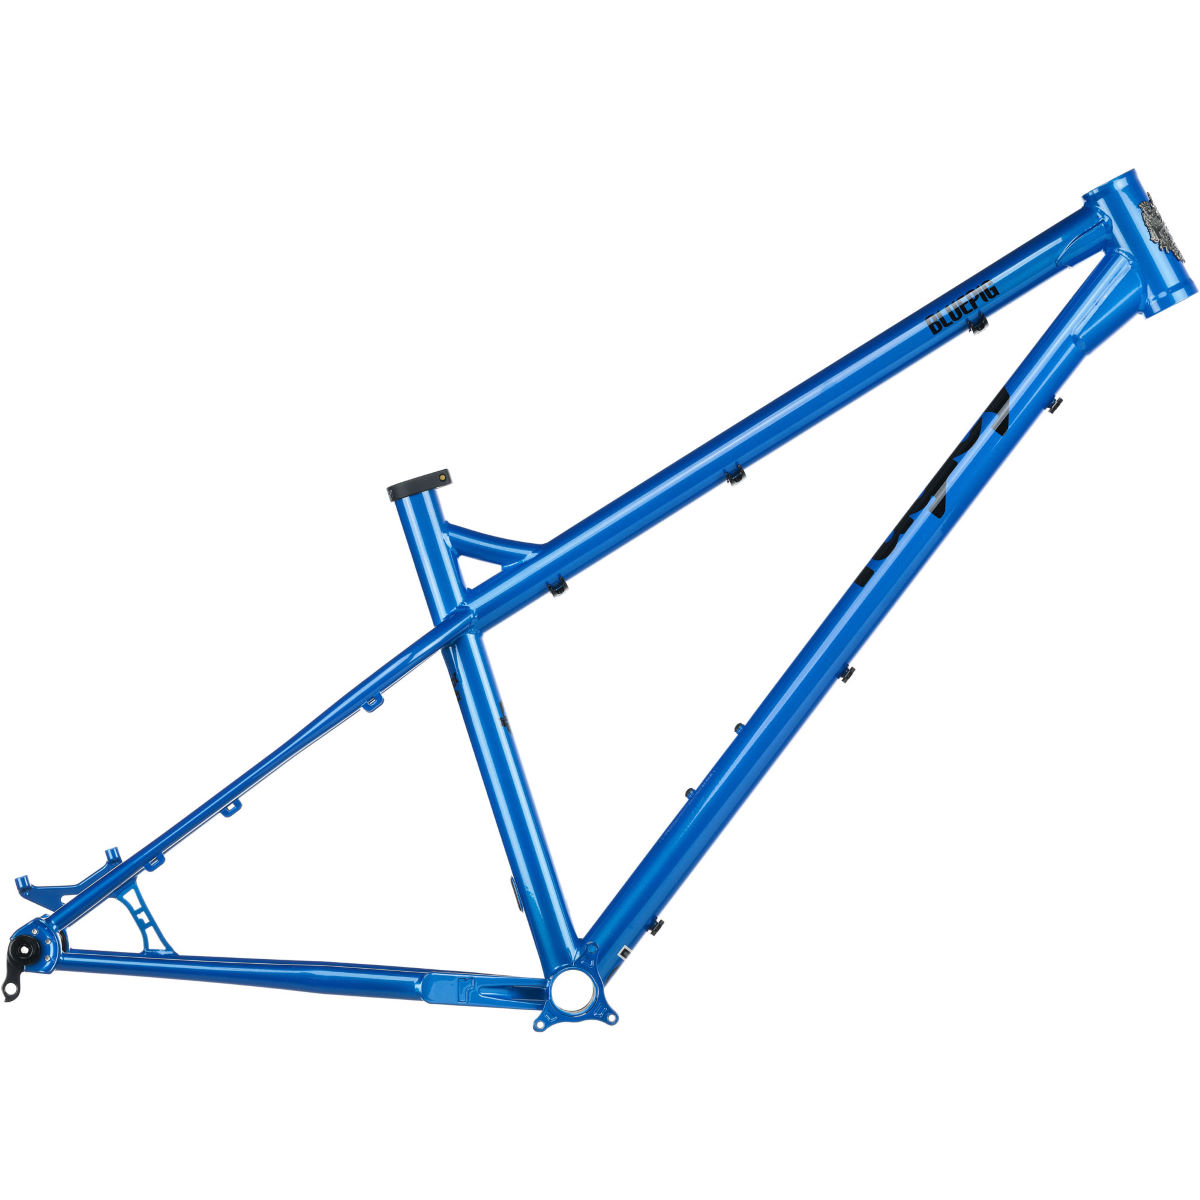 Image of Cadre VTT semi-rigide Ragley Blue Pig (2020) - Medium